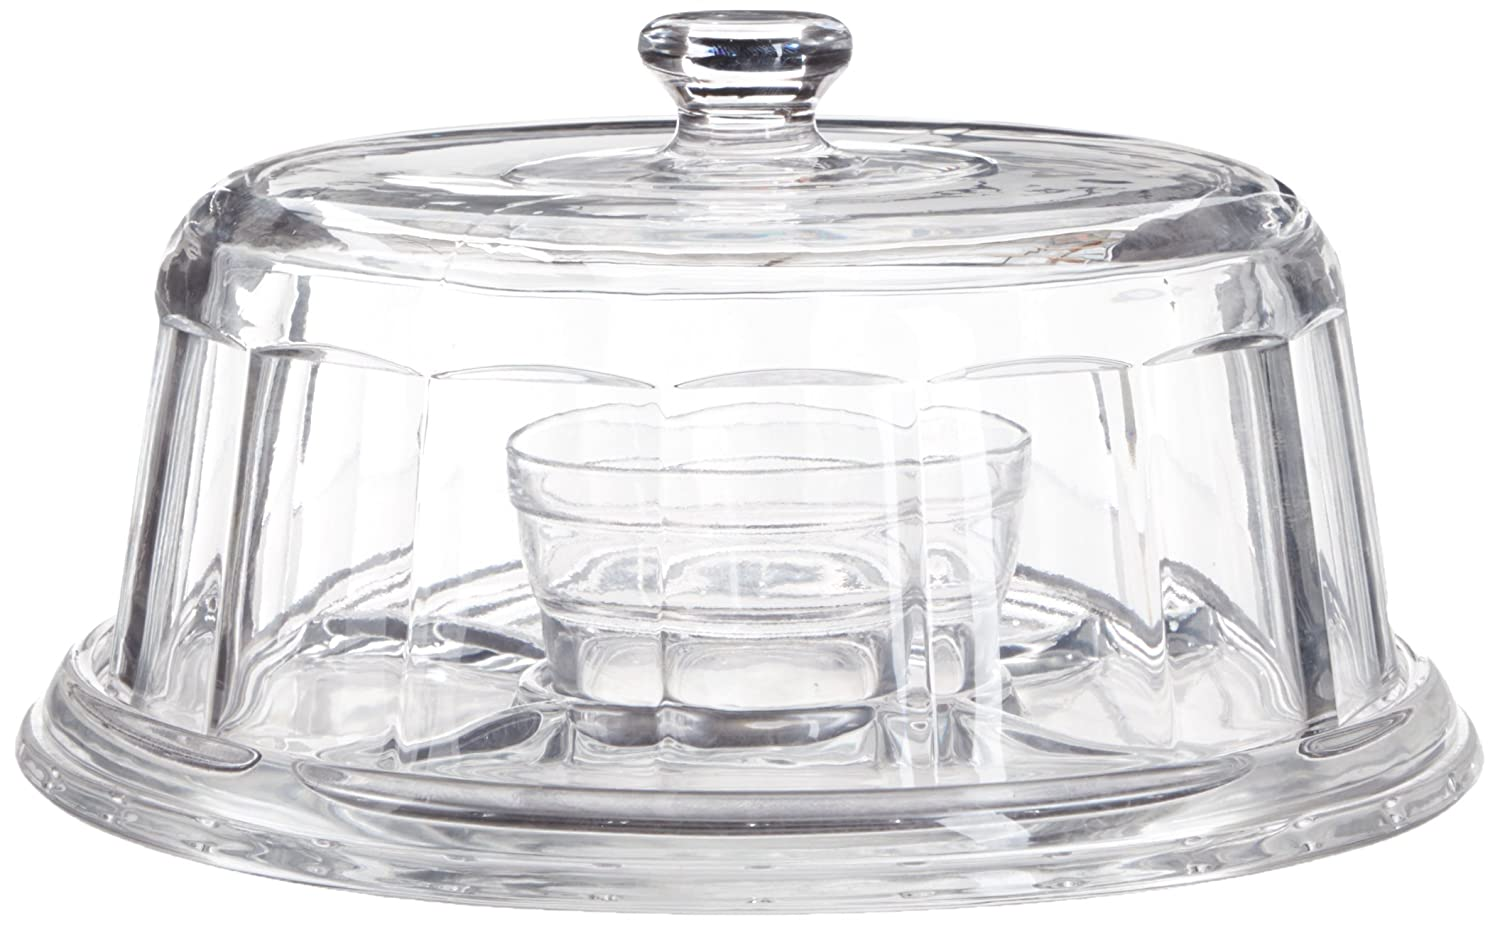 Home Essentials 07536 Beautiful Glass Panaled Cake Stand Multifunctional Cake and Serving Stand (6 uses), Clear